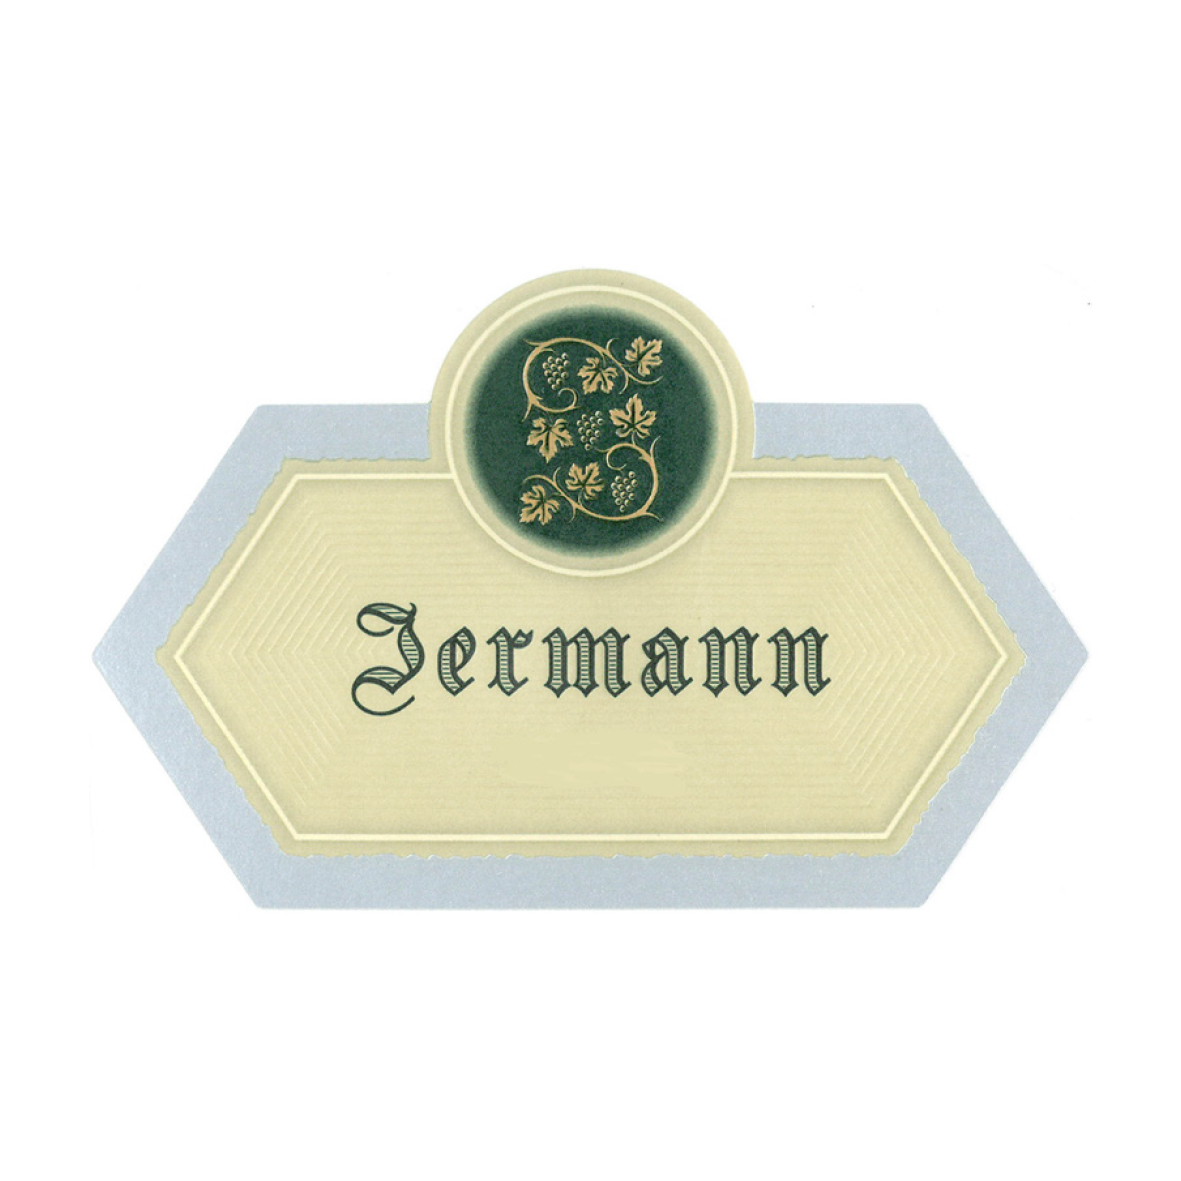 Jermann wineyard logo